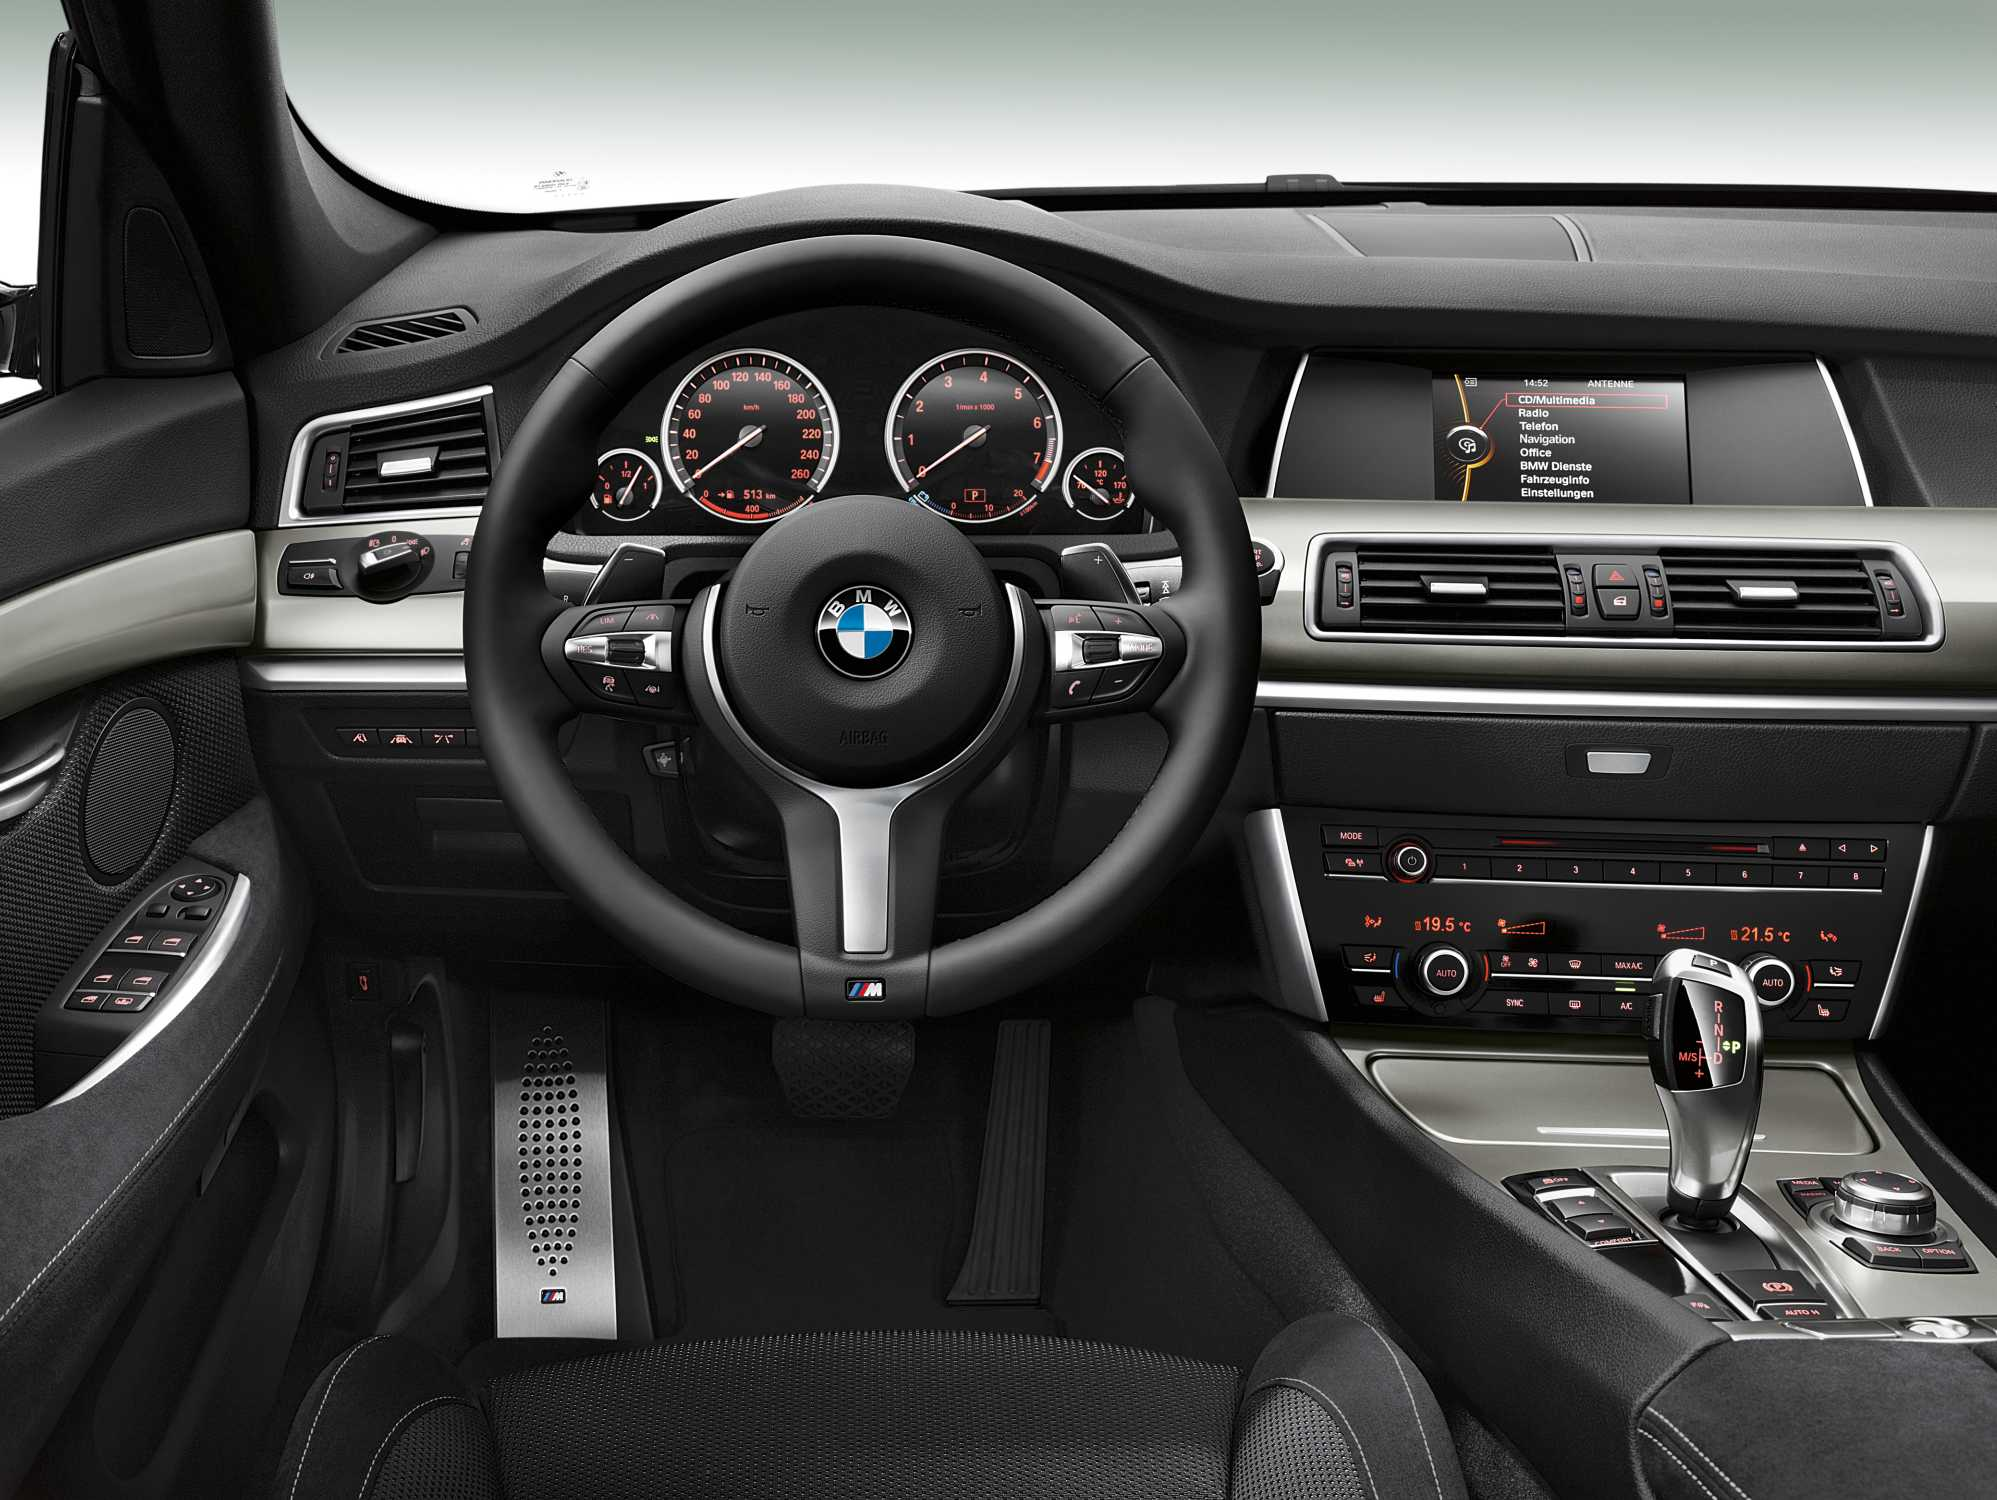 The New Bmw 5 Series Gran Turismo M Sport Package 05 2013